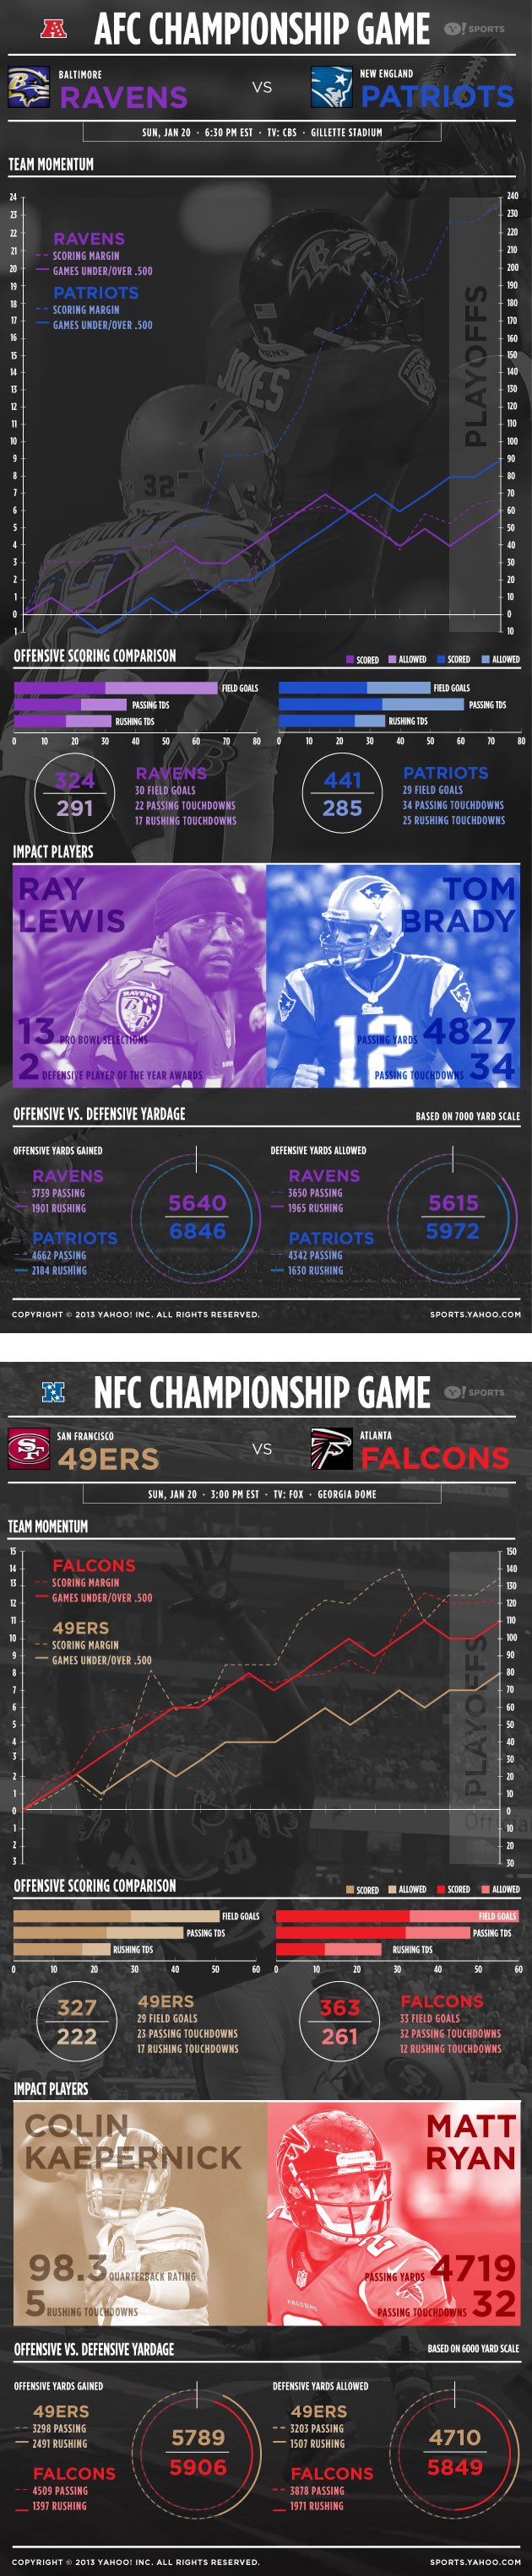 Infographic: NFL conference championships by the numbers